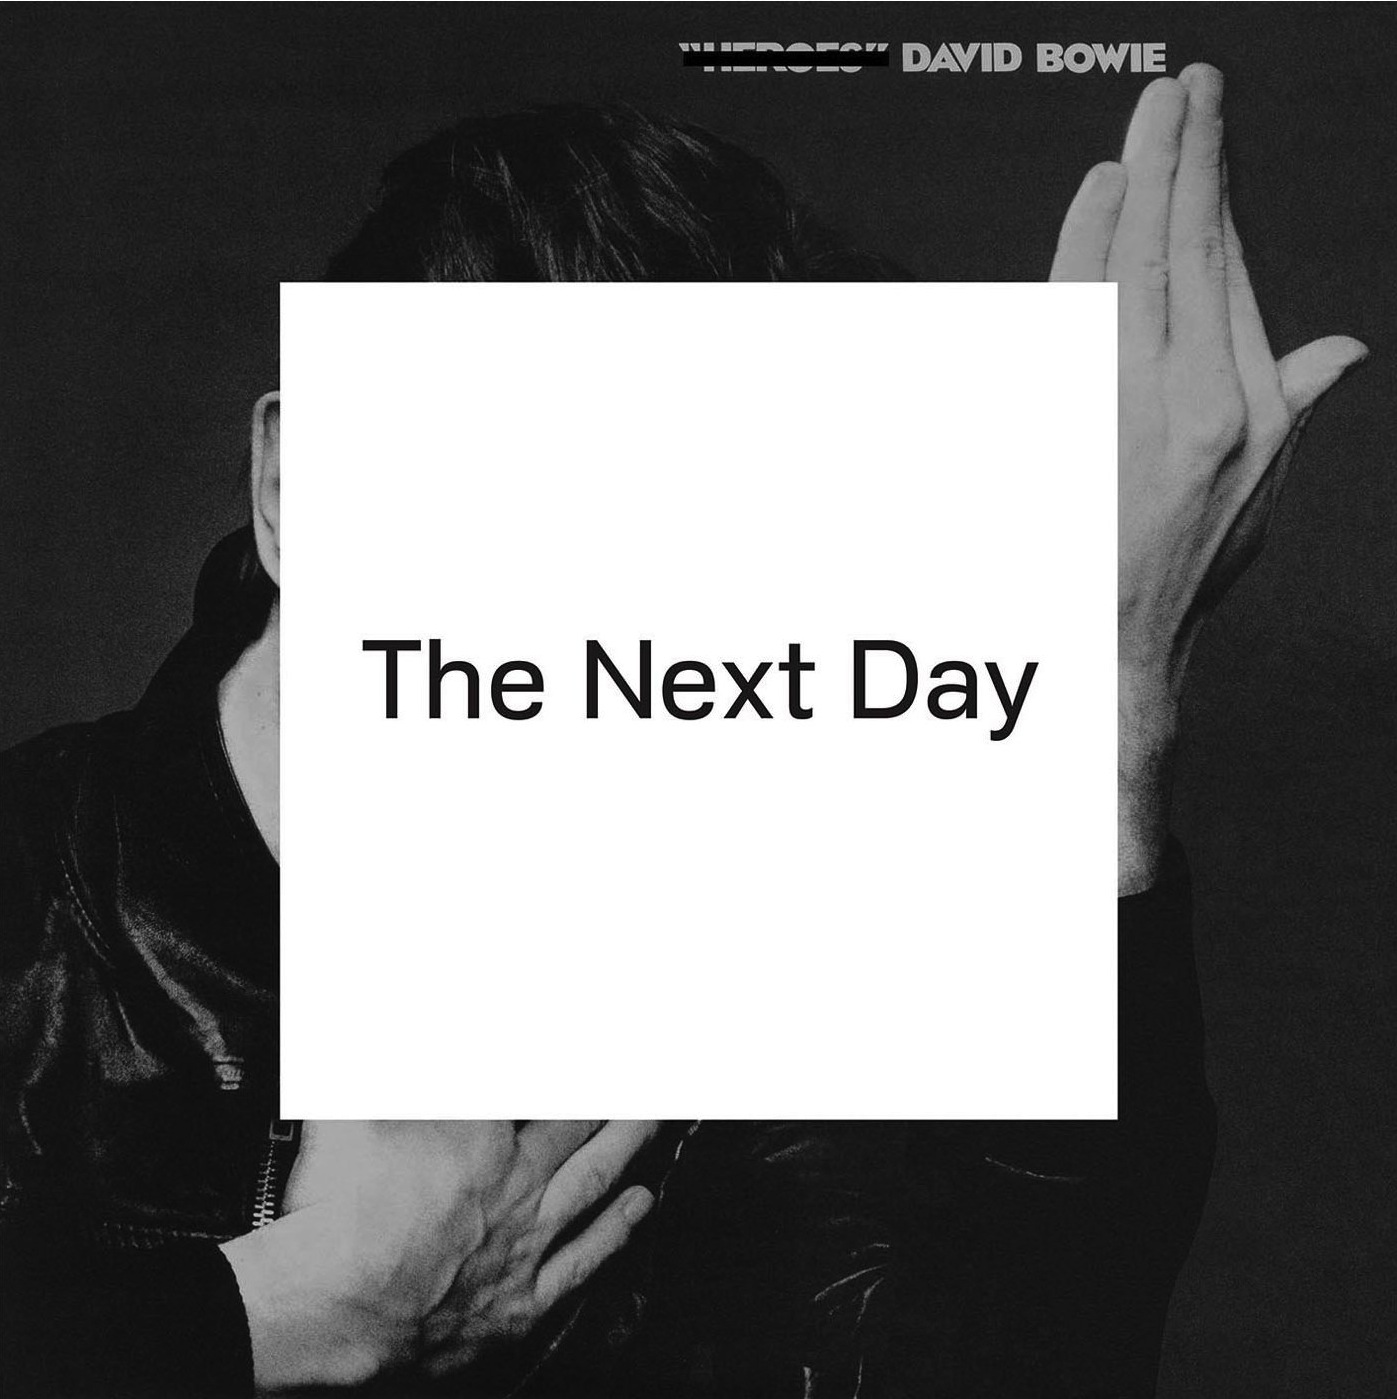 The Next Day album cover, 2013, designed by Barnbrook